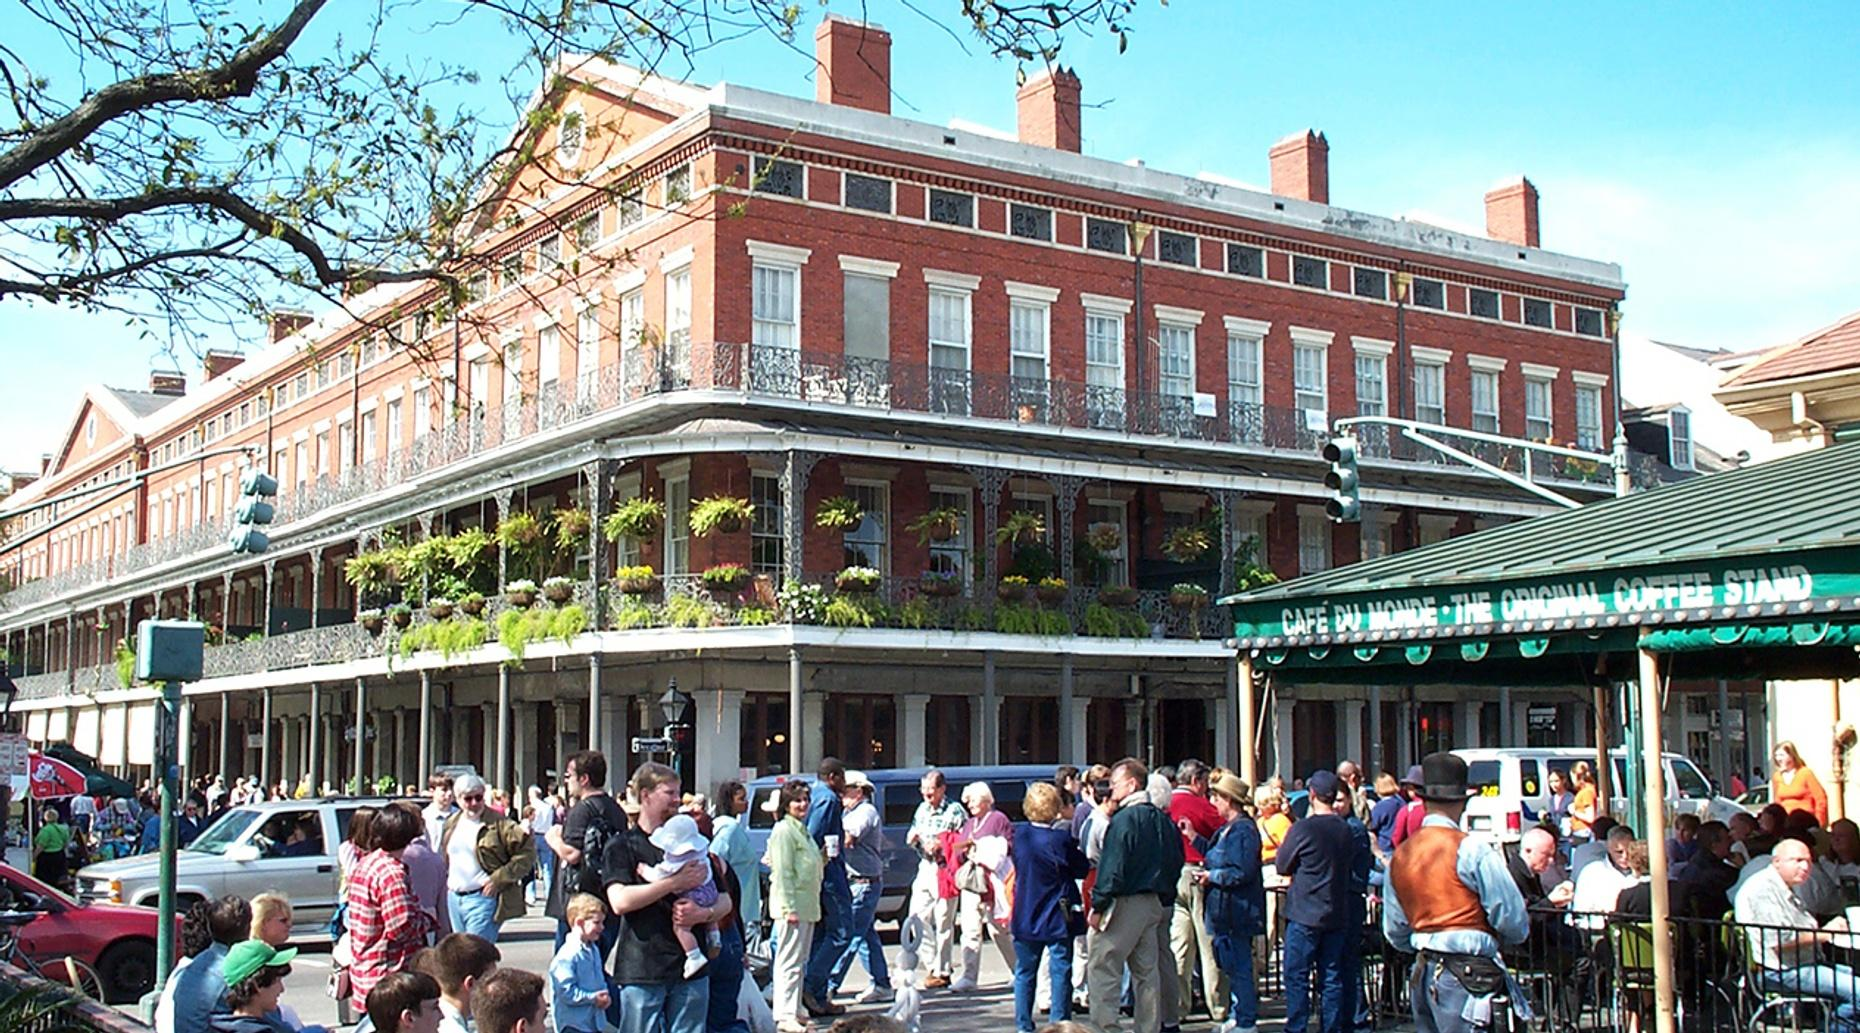 Guided Walking Tour of the French Quarter in New Orleans